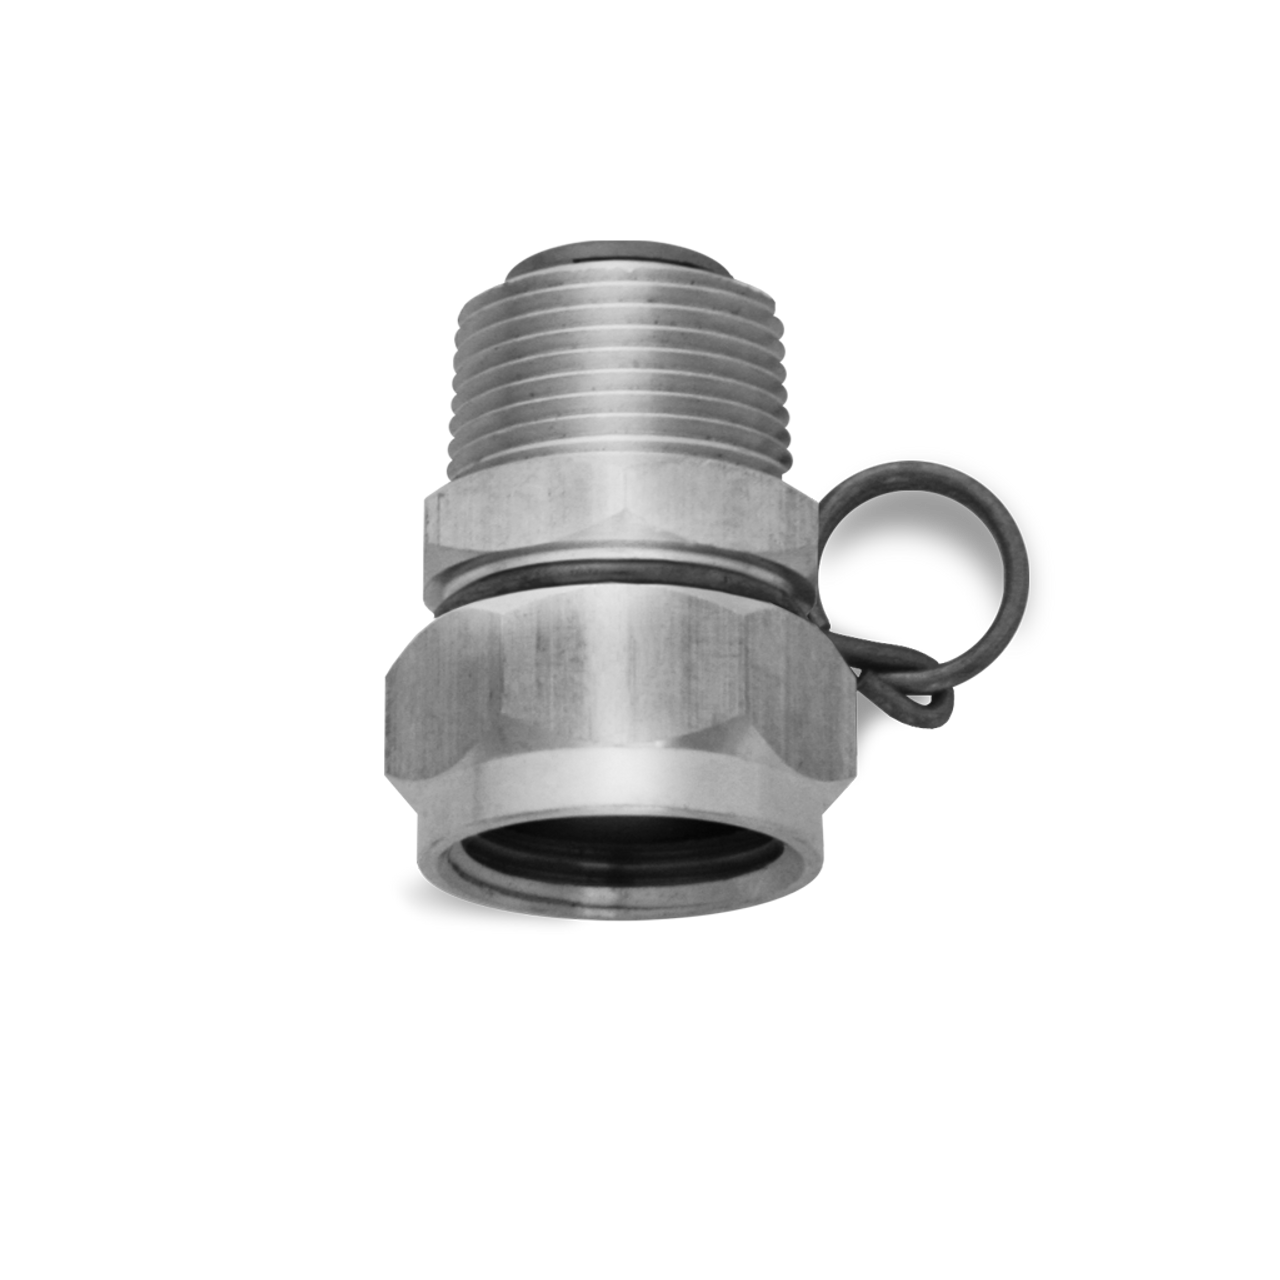 SANI LAV - Swivel Hose Adapter Stainless Steel - N17S